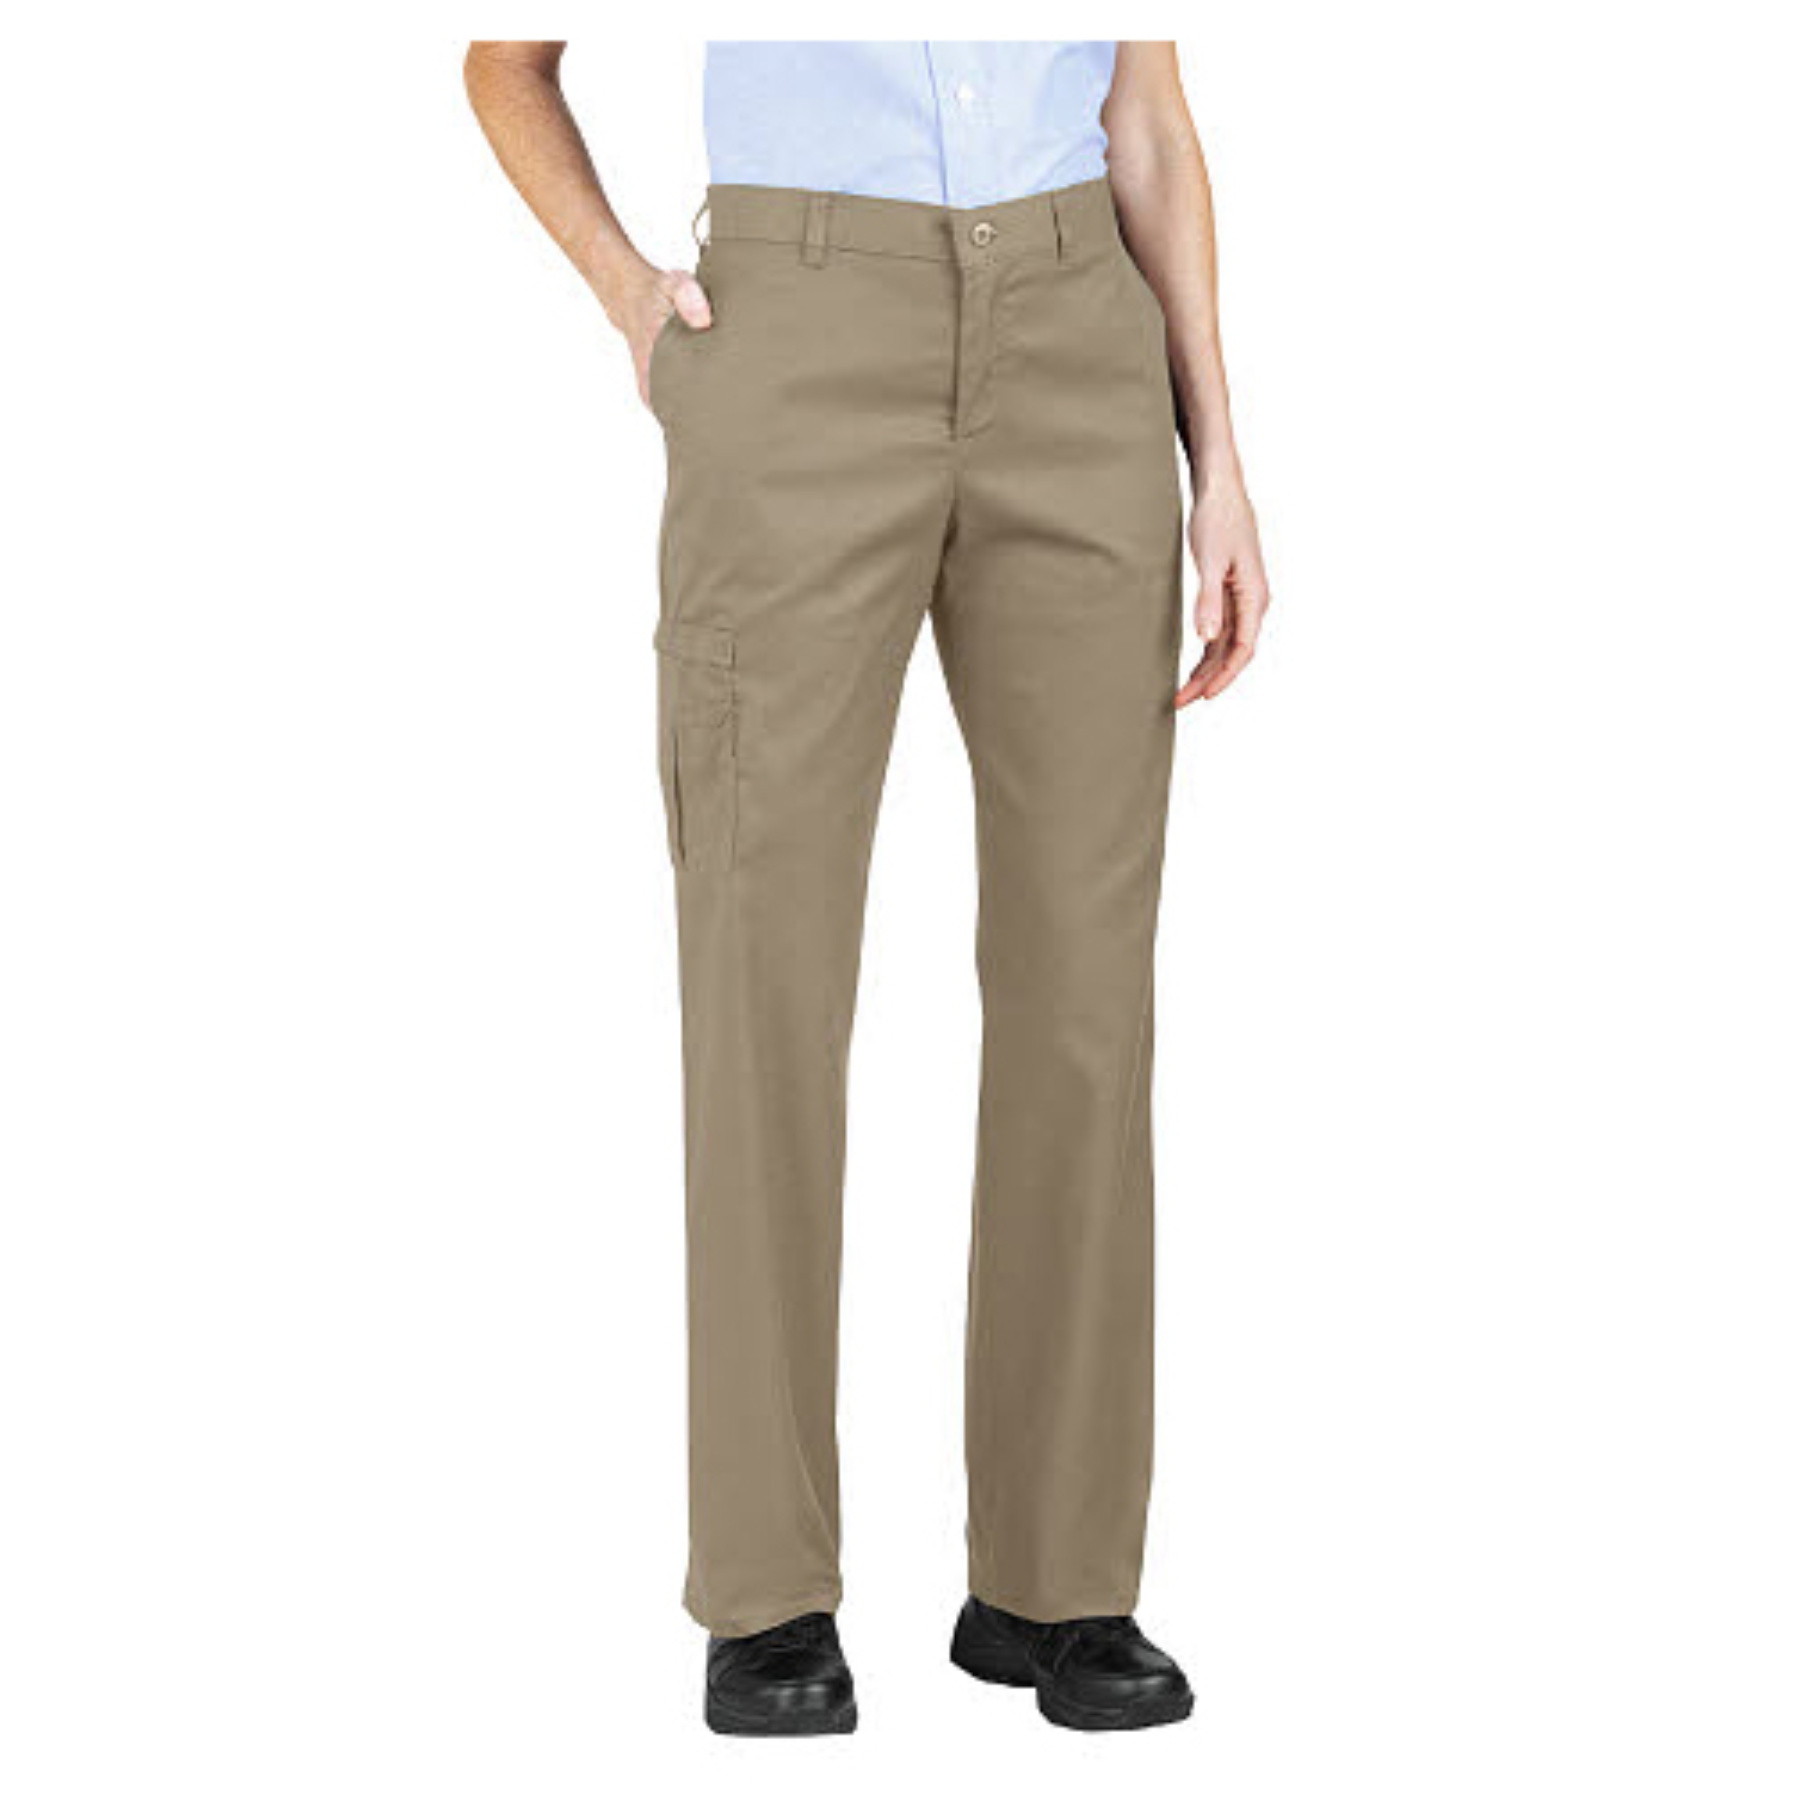 women s relaxed fit exercise pants photo - 2